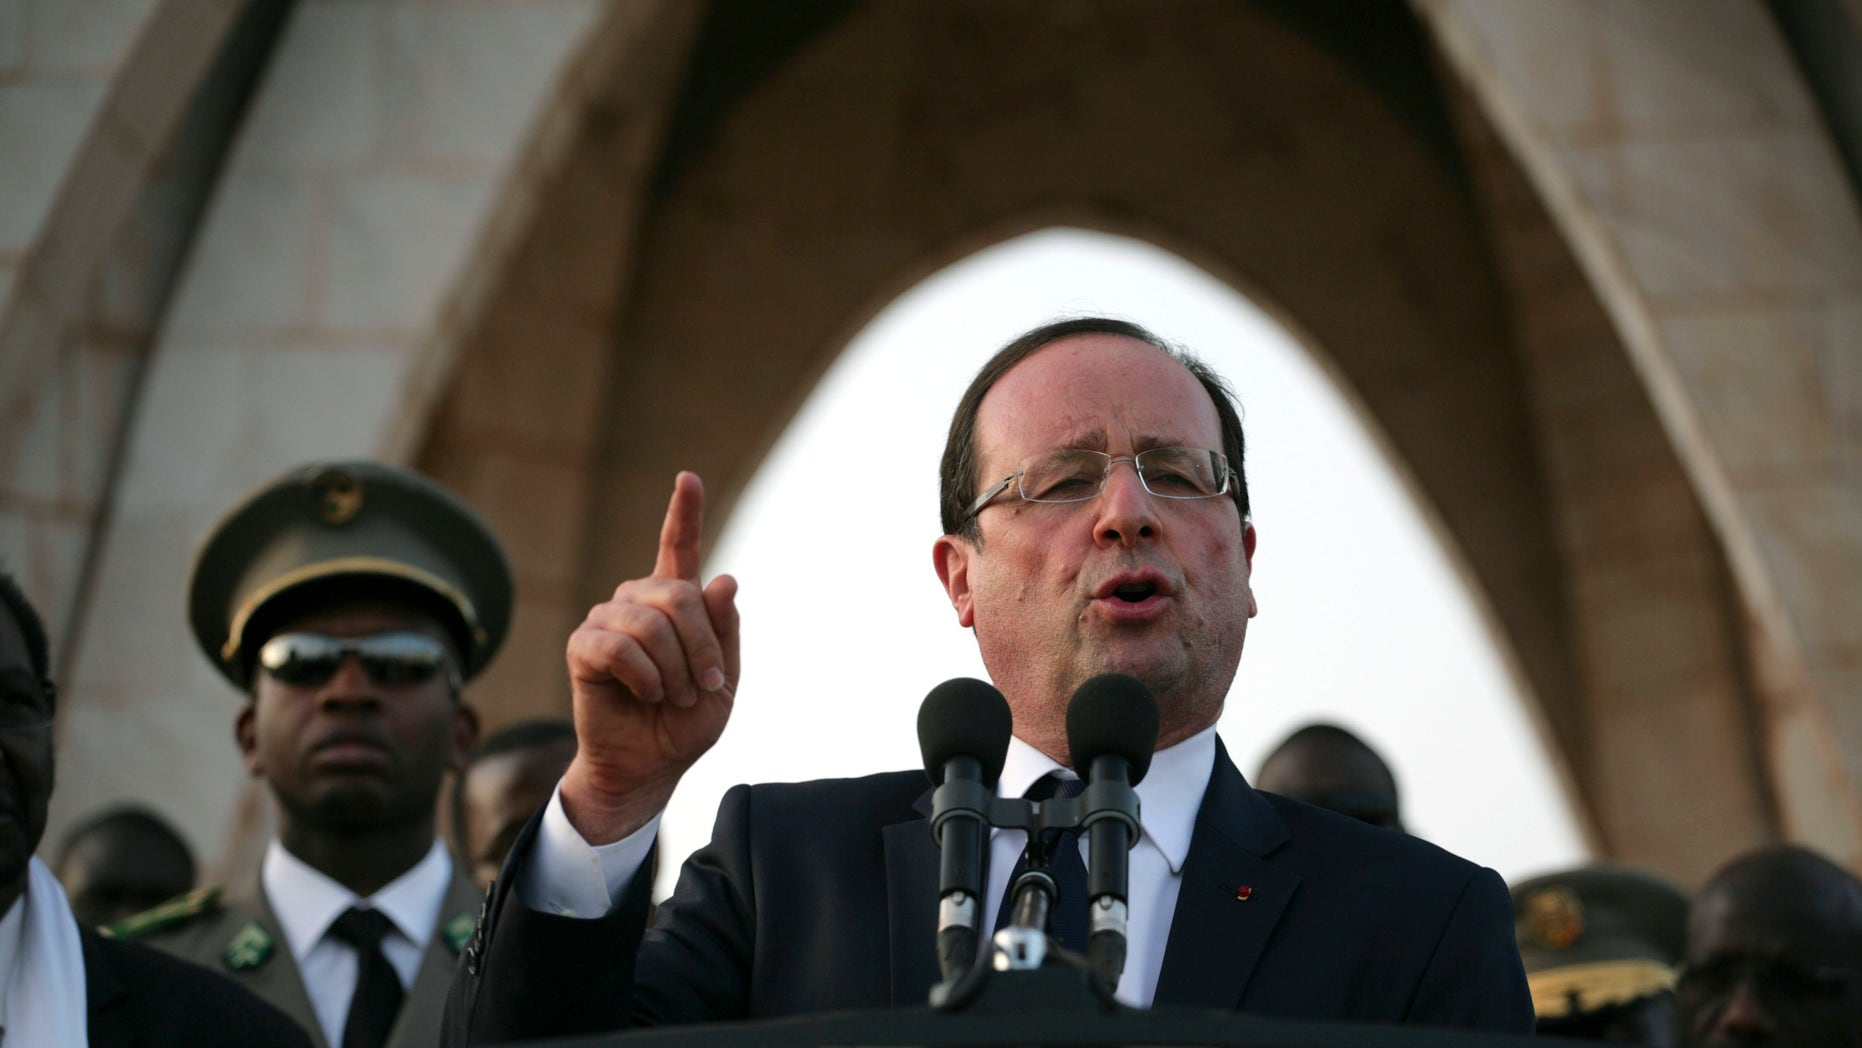 Feb. 2, 2013: French President Francois Hollande speaks at Independence Place in central Bamako, Mali.